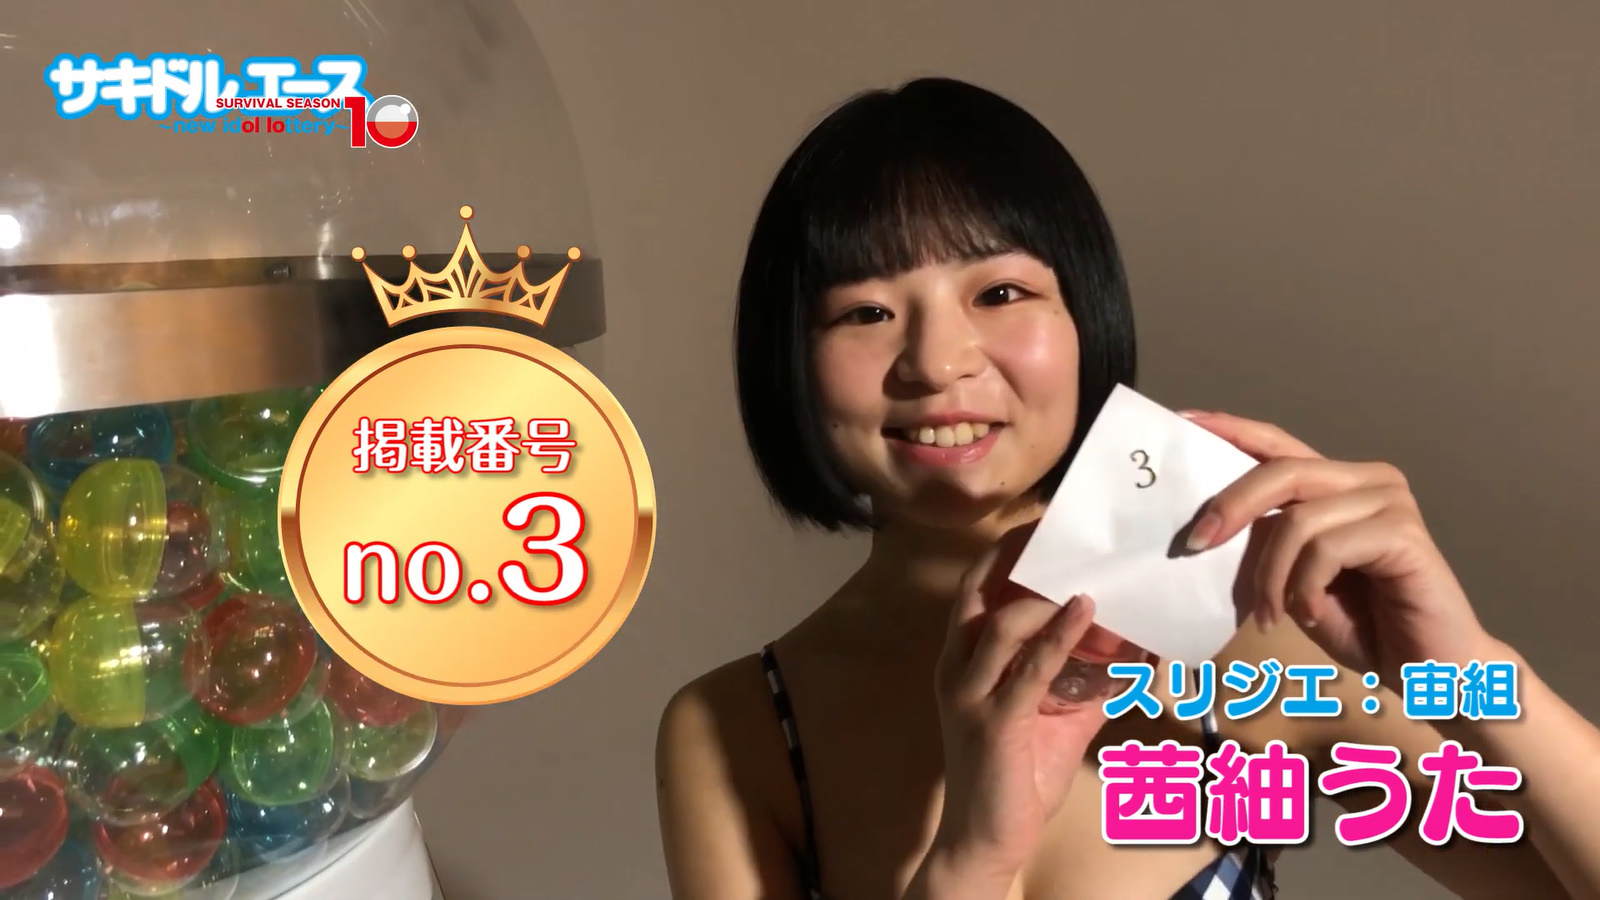 Sakidol Ace 10 Introduction Movie Capture of Swimsuit068